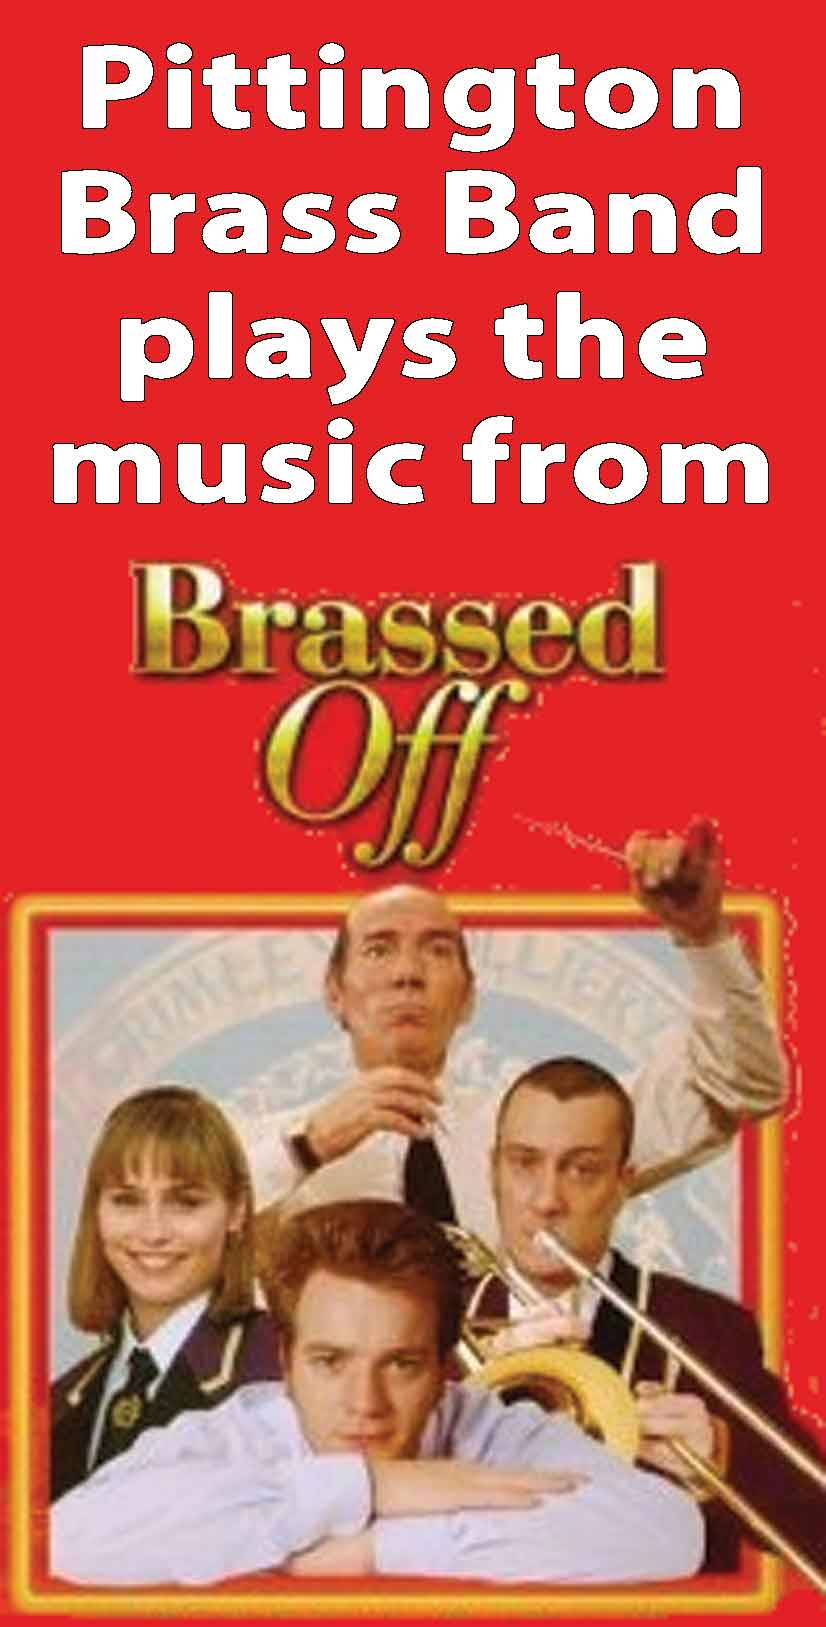 Brassed                         off pic